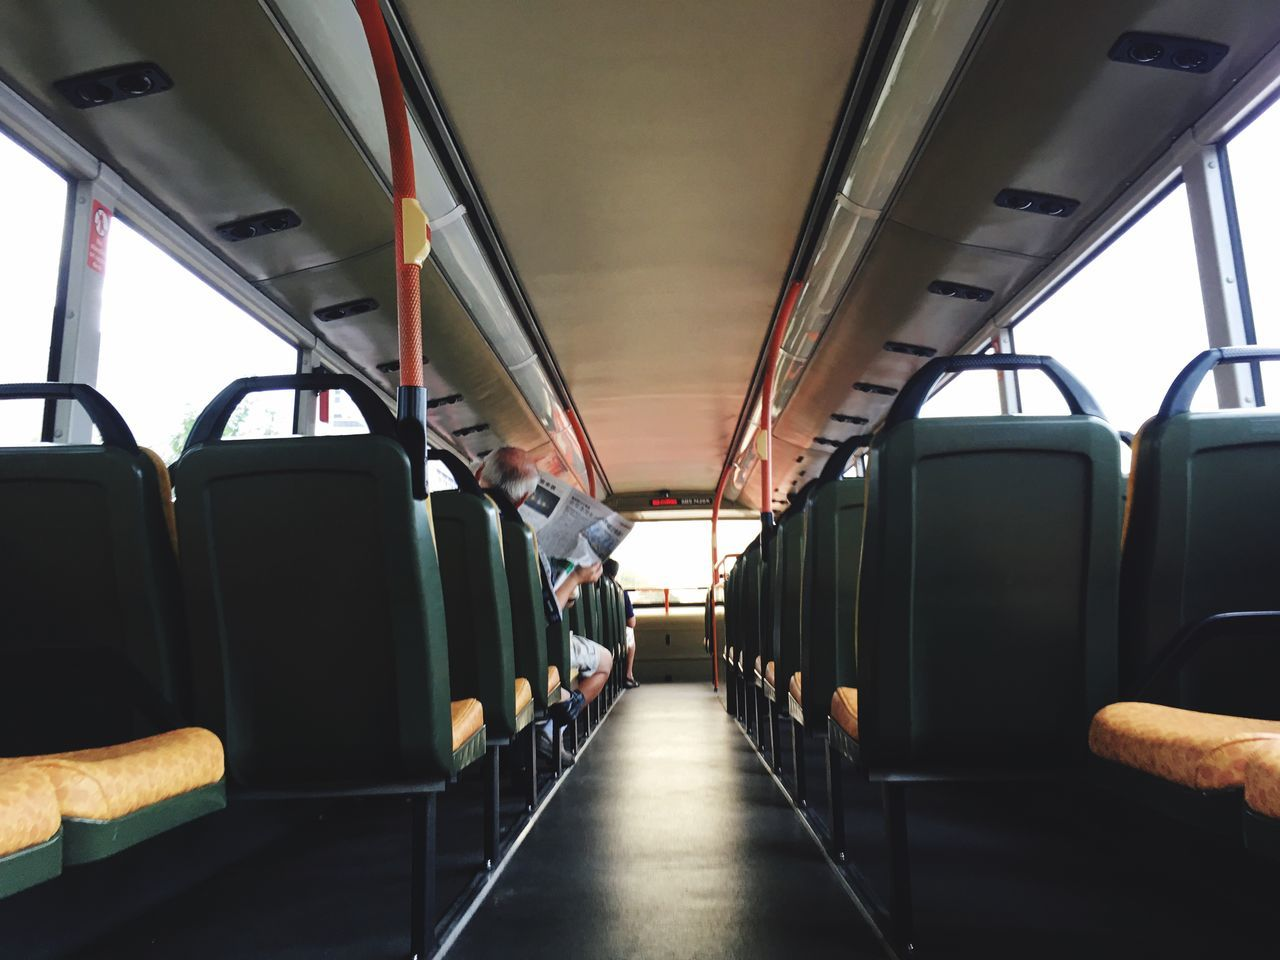 Transportation Vehicle Interior Mode Of Transport Vehicle Seat Public Transportation Travel Train - Vehicle Rail Transportation Subway Train Indoors  Journey Passenger Commuter Train Real People Train Interior Large Group Of People Day Singapore, bus rides